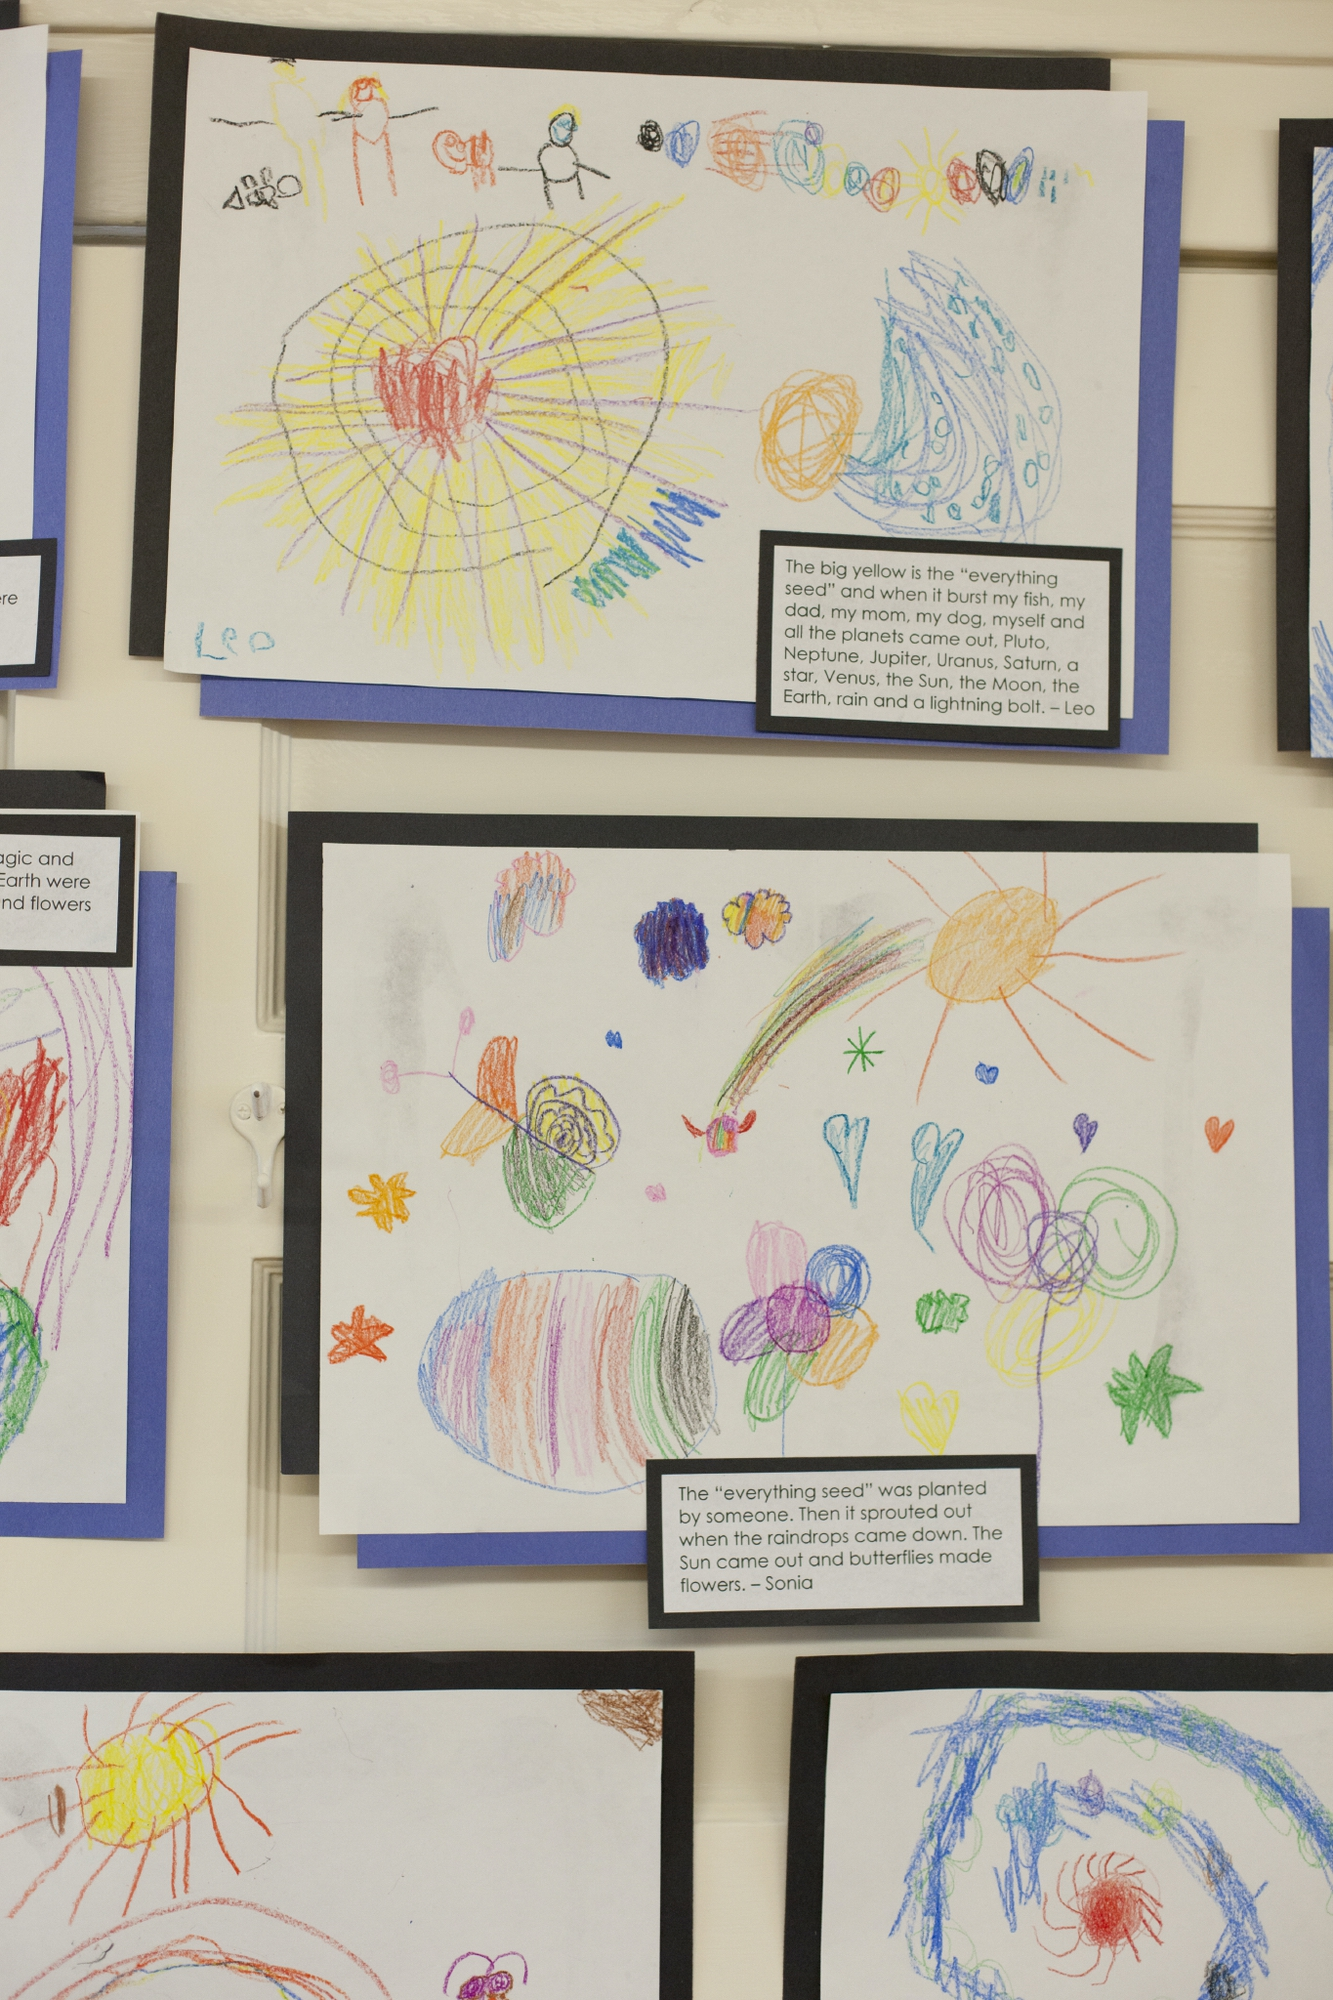 Drawings by Ross Kindergarten students depicting the origin of the universe, created in their Cultural History unit about the origins of life on earth